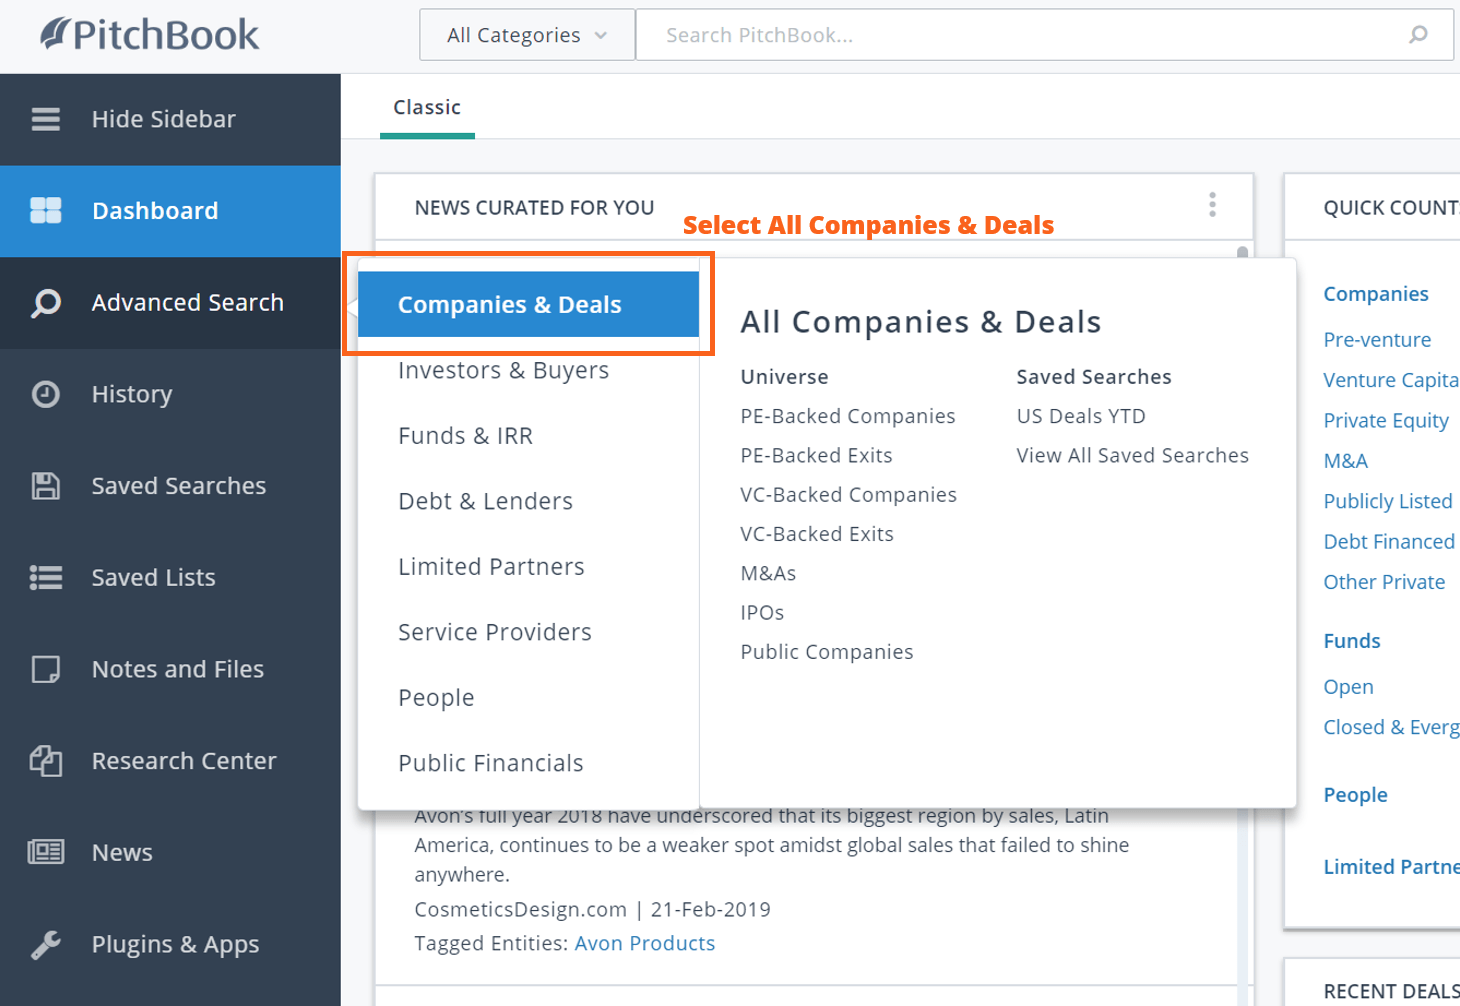 PitchBook advanced search all companies & deals